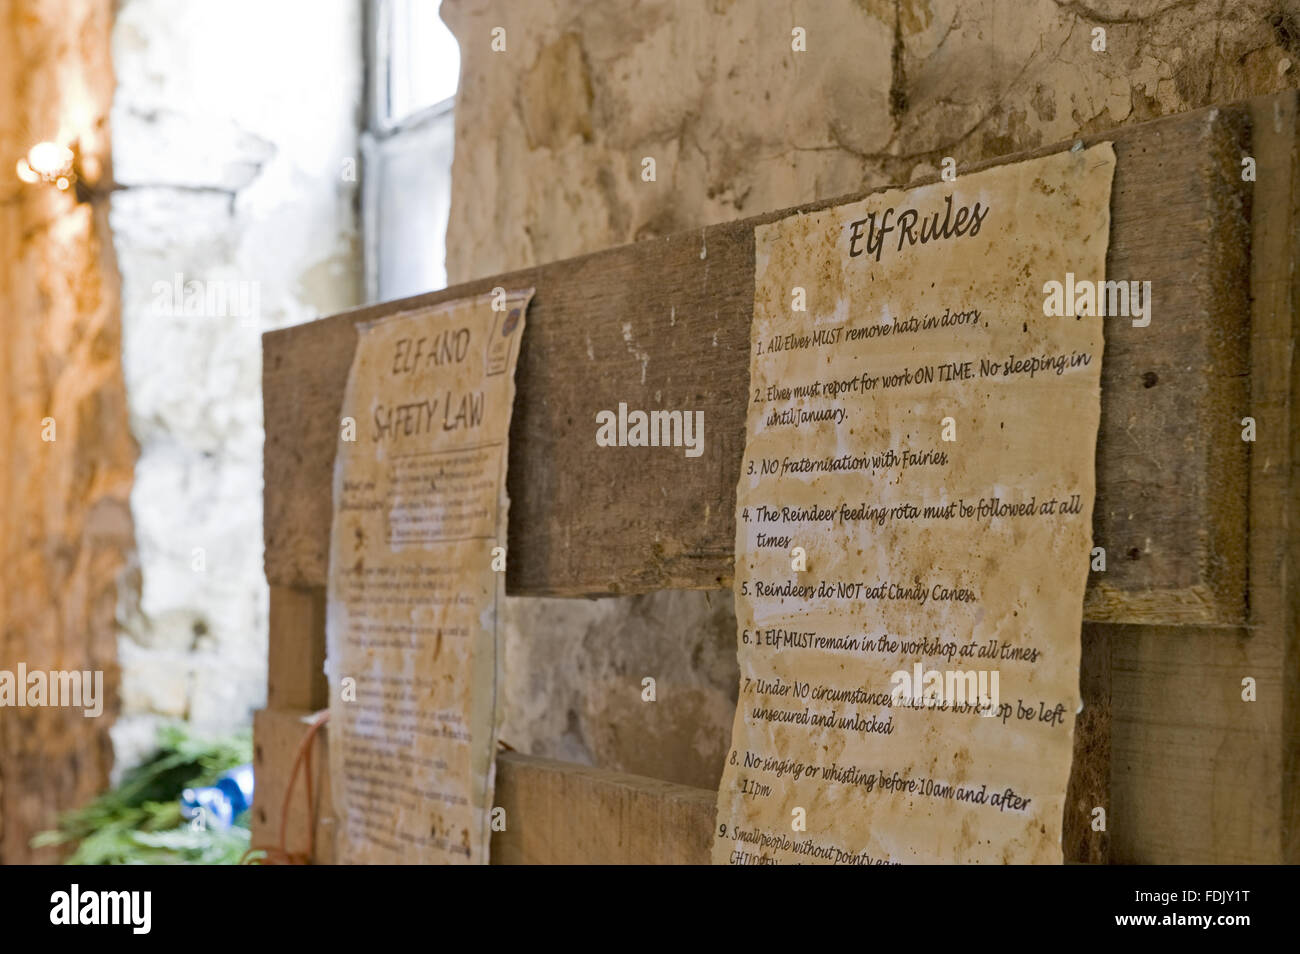 The rules for elves, pinned up at a Christmas event at Chirk Castle, Wrexham, Wales. - Stock Image